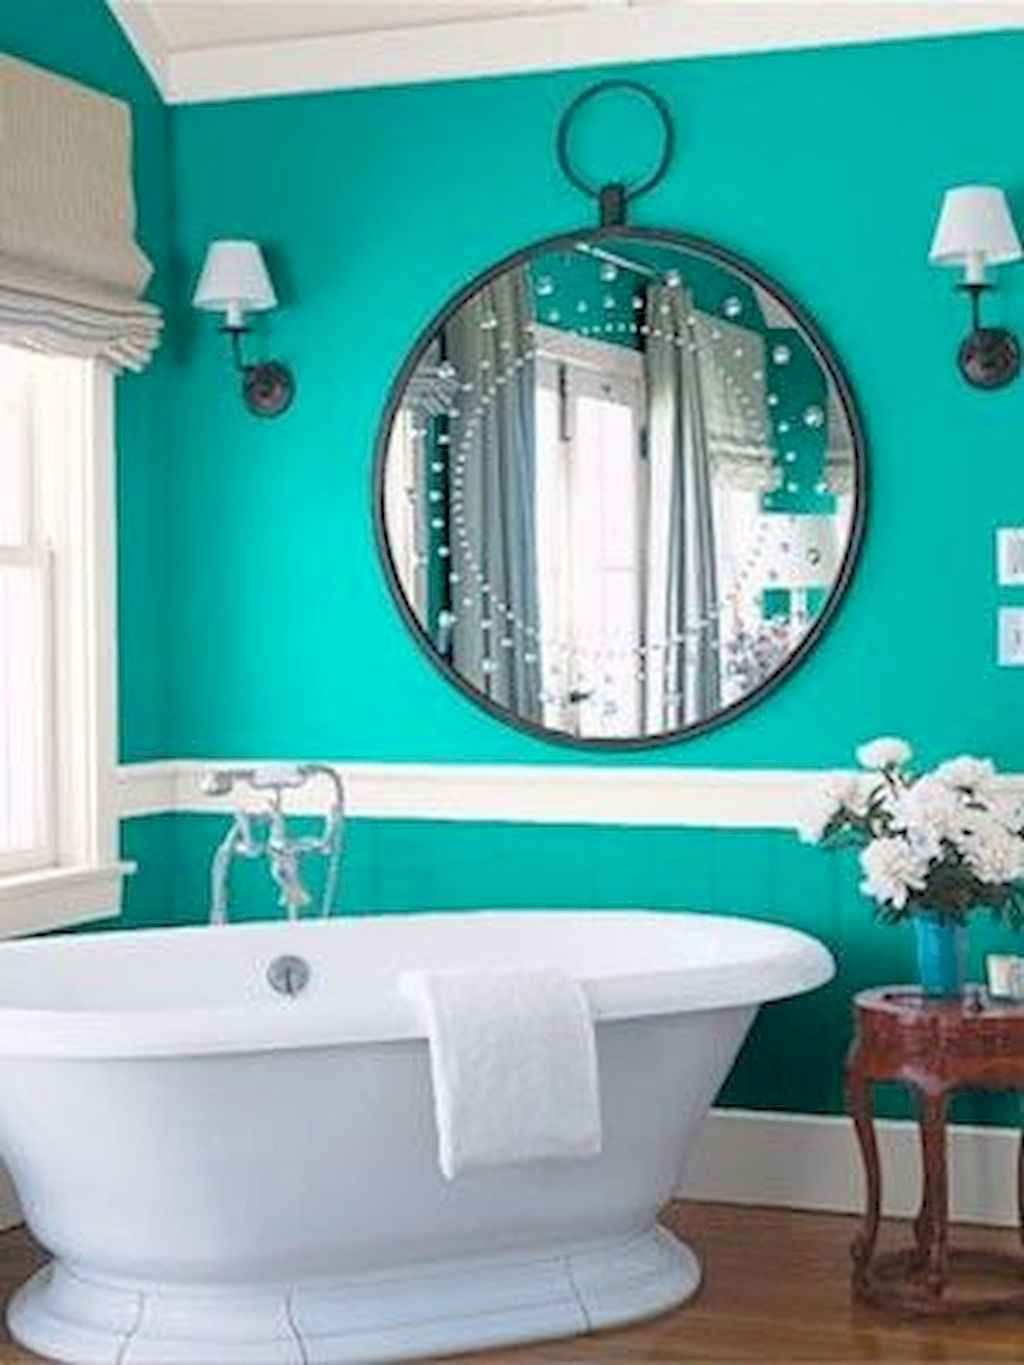 55 cool and relax bathroom design ideas (12)